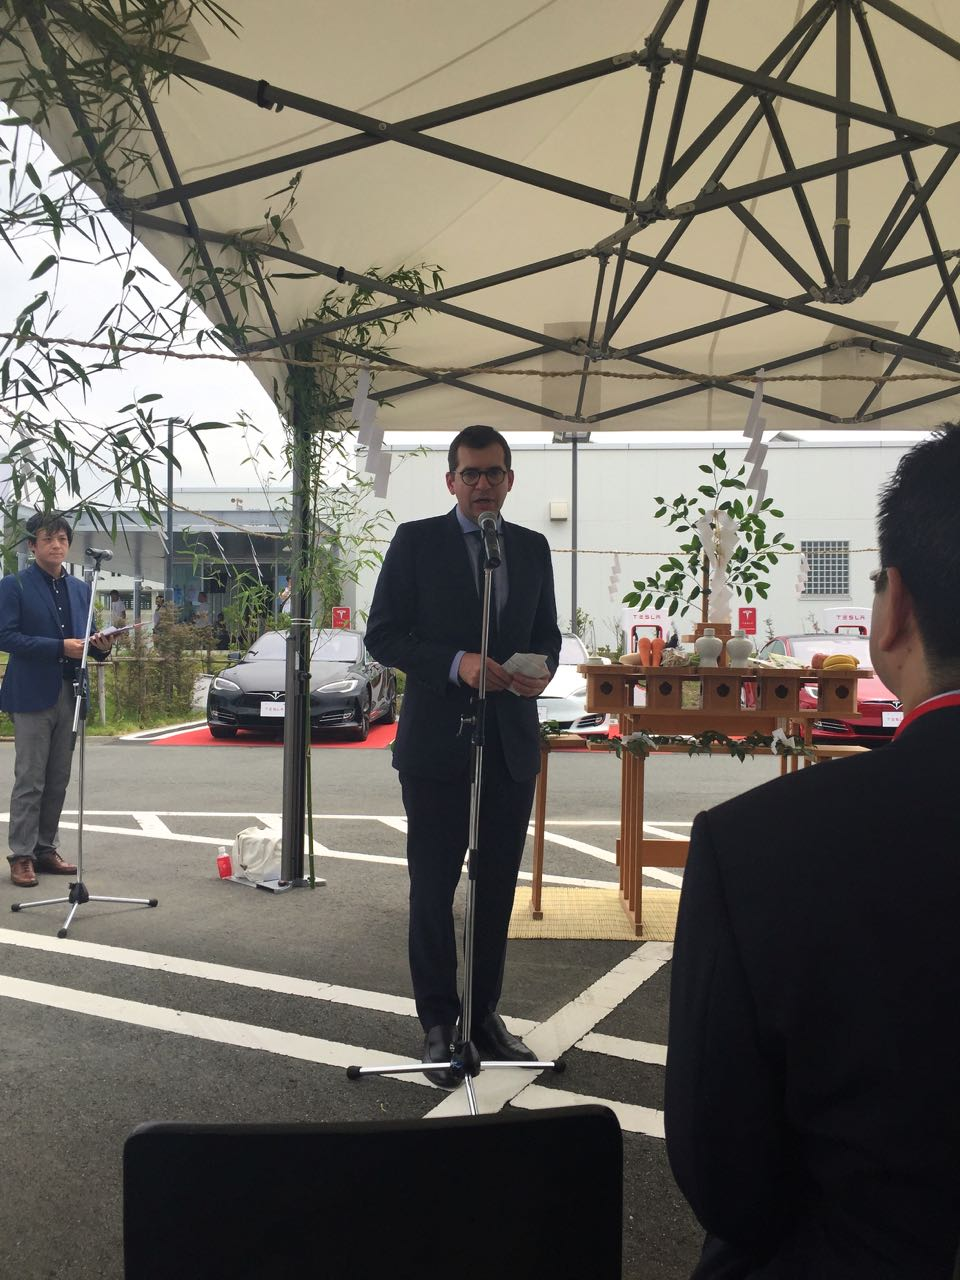 Nicolas Villeger, the head of Tesla Japan and North Asia gives opening remarks at the Hamamatsu supercharger opening ceremony.